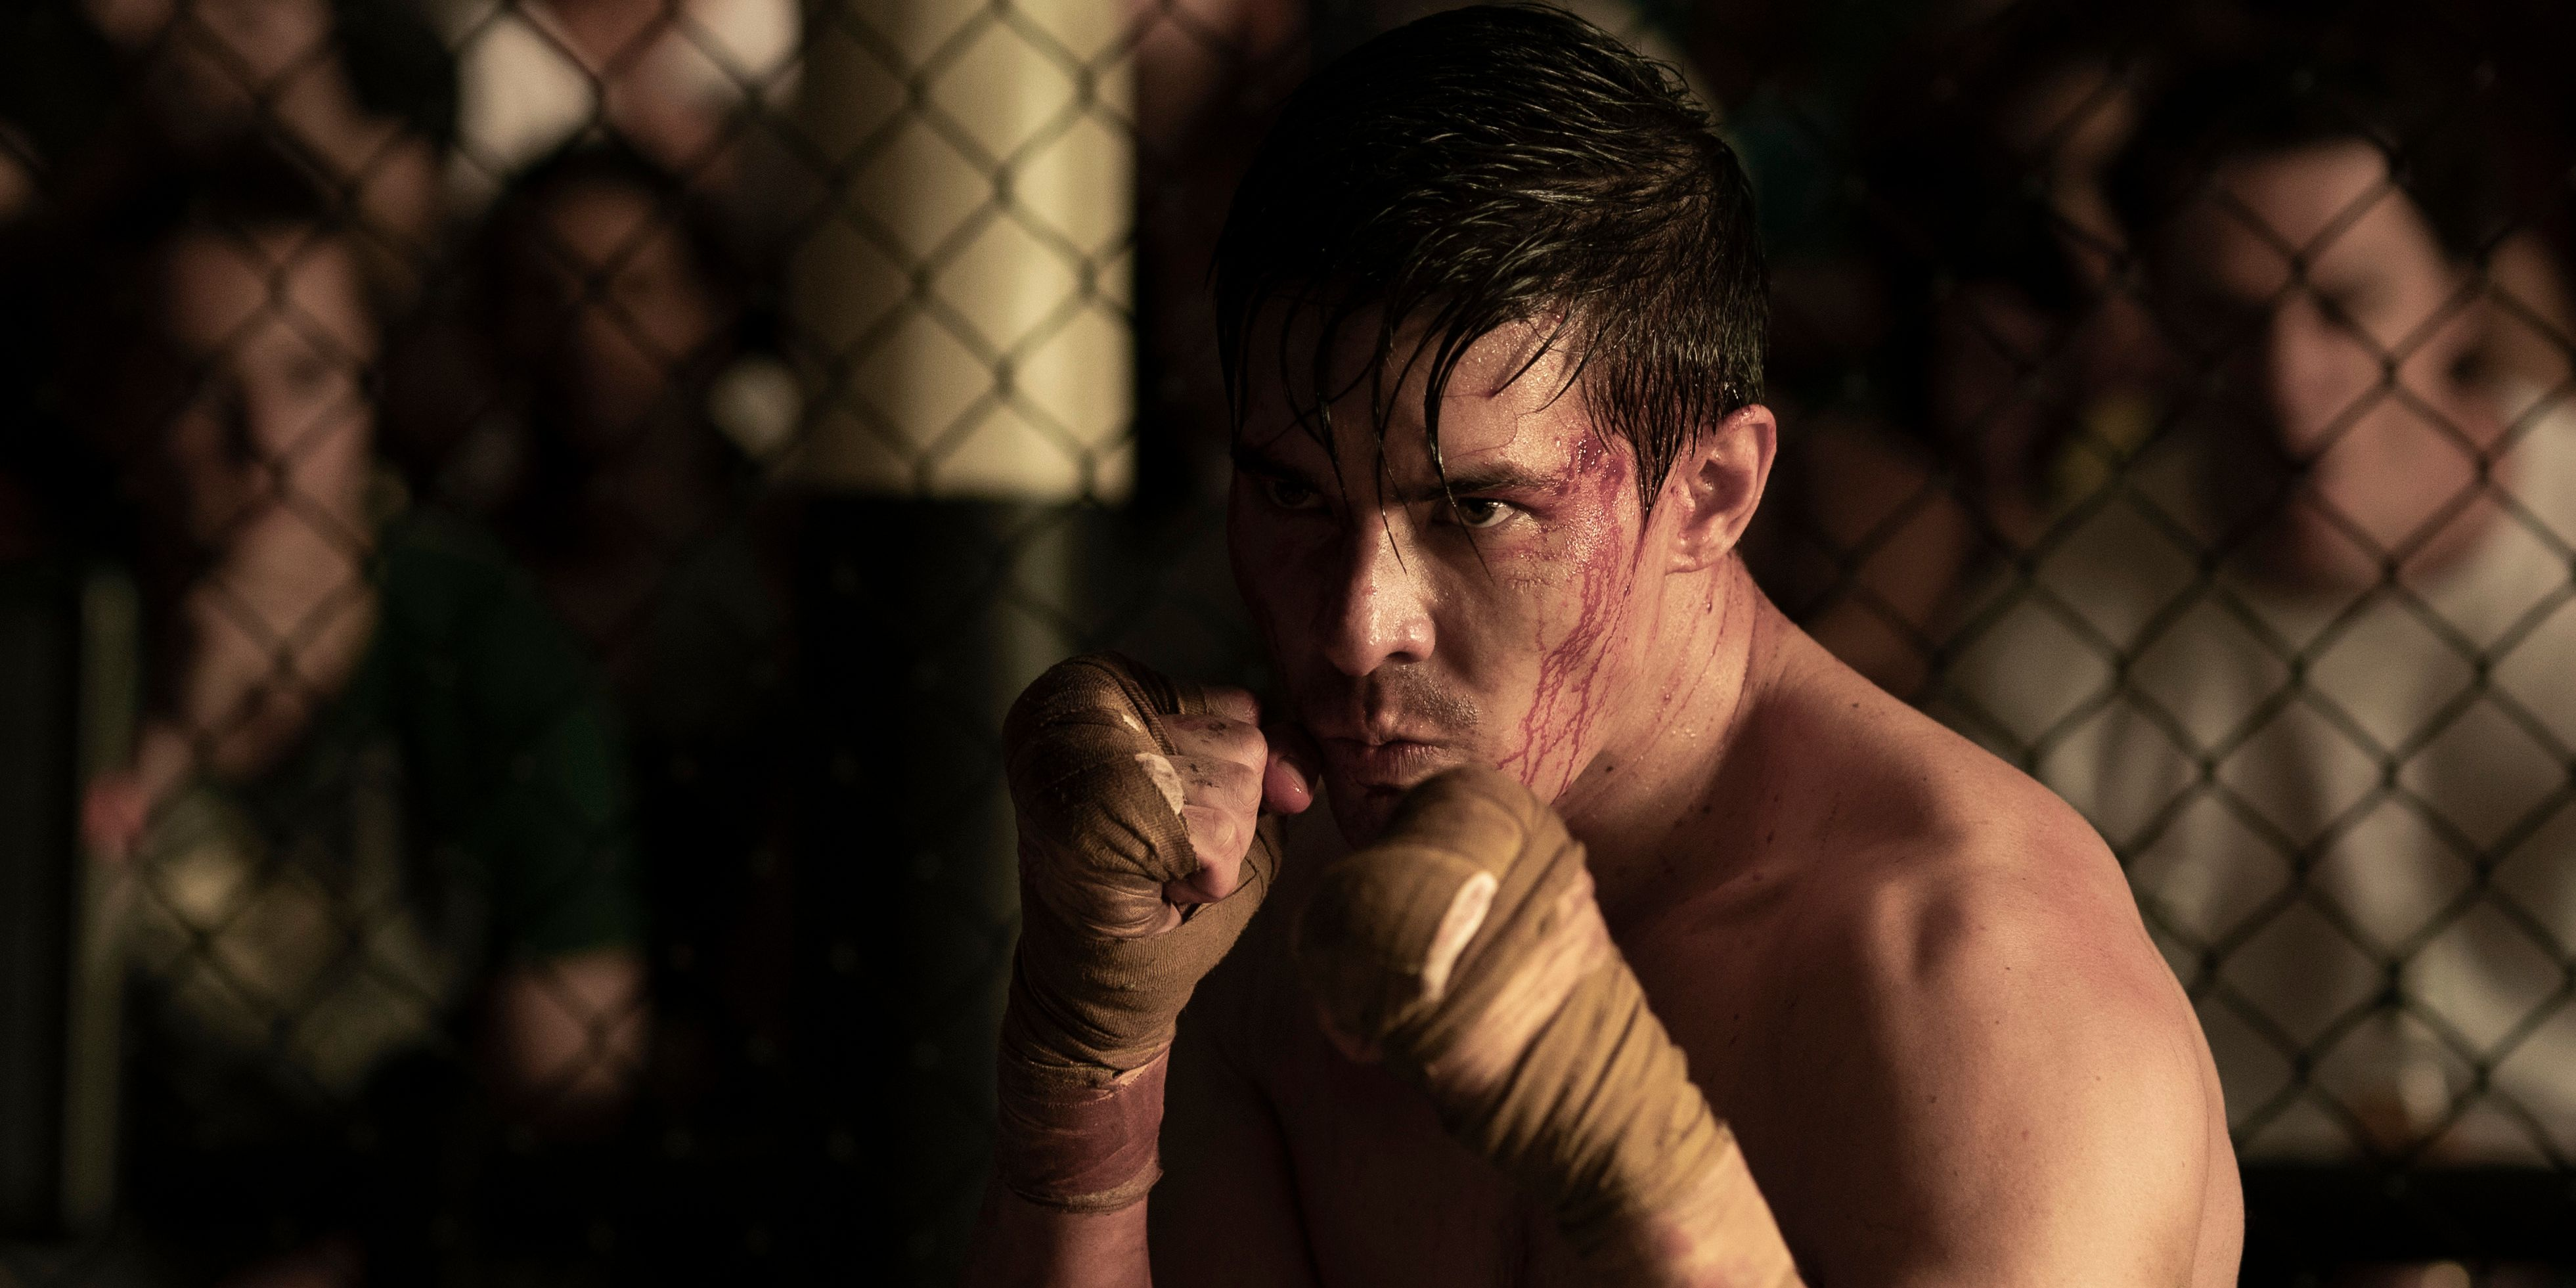 Mortal Kombat Star Lewis Tan on Fight Scenes, Cole Young & More